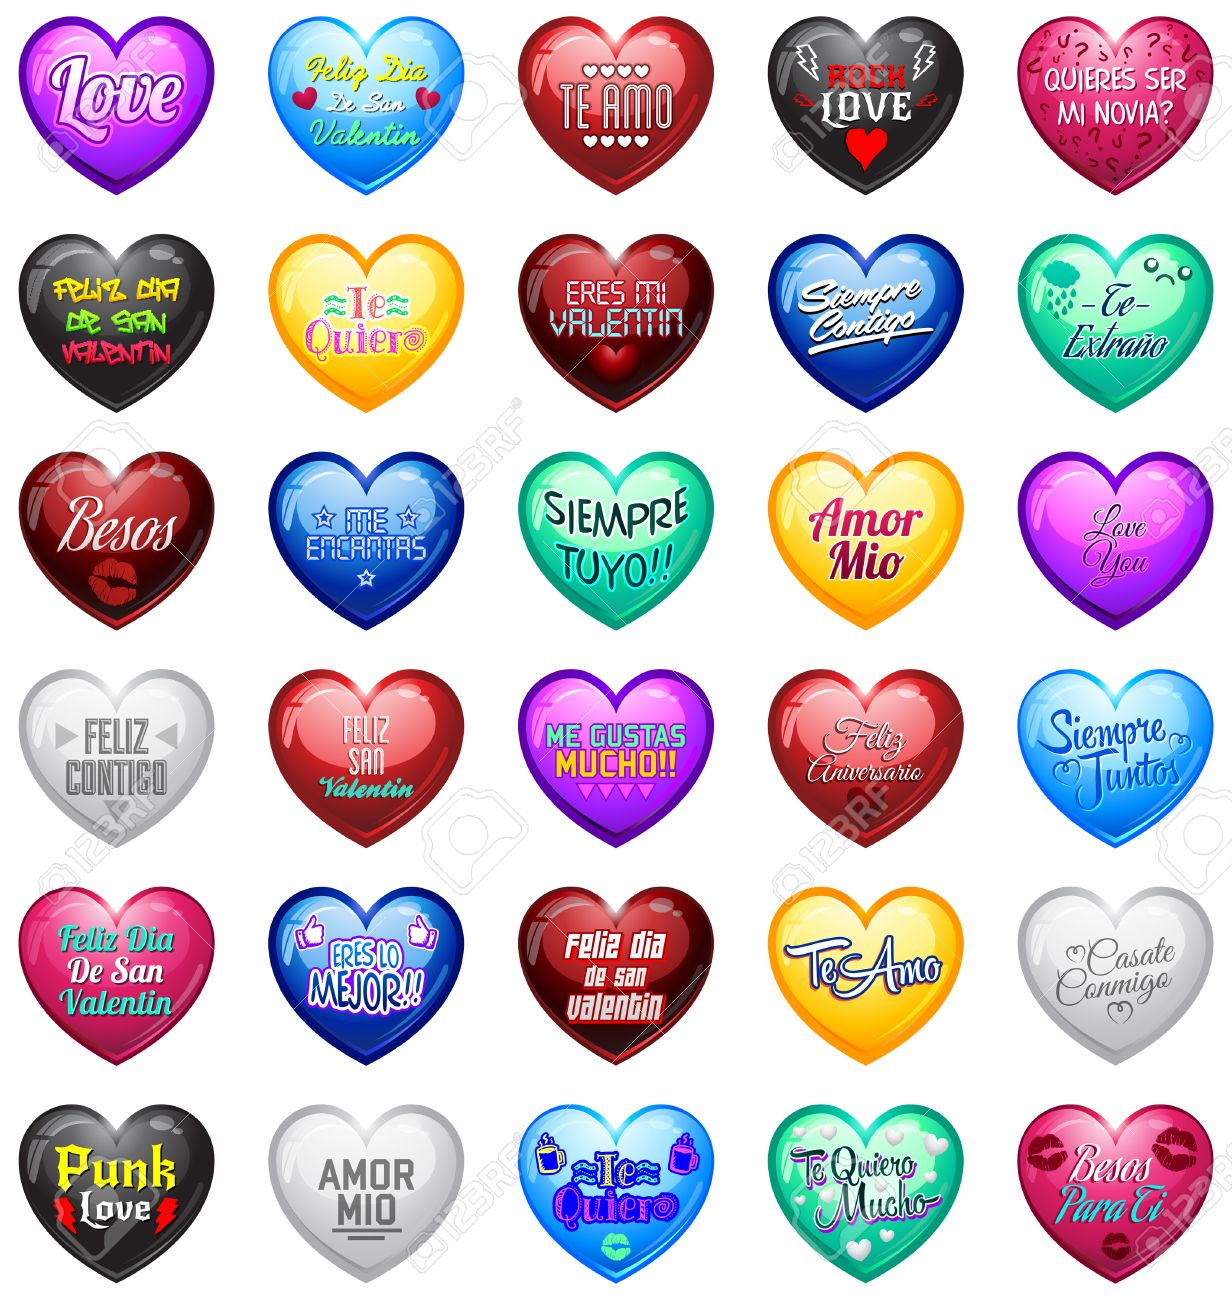 Love Hearts with spanish messages - vector master collection